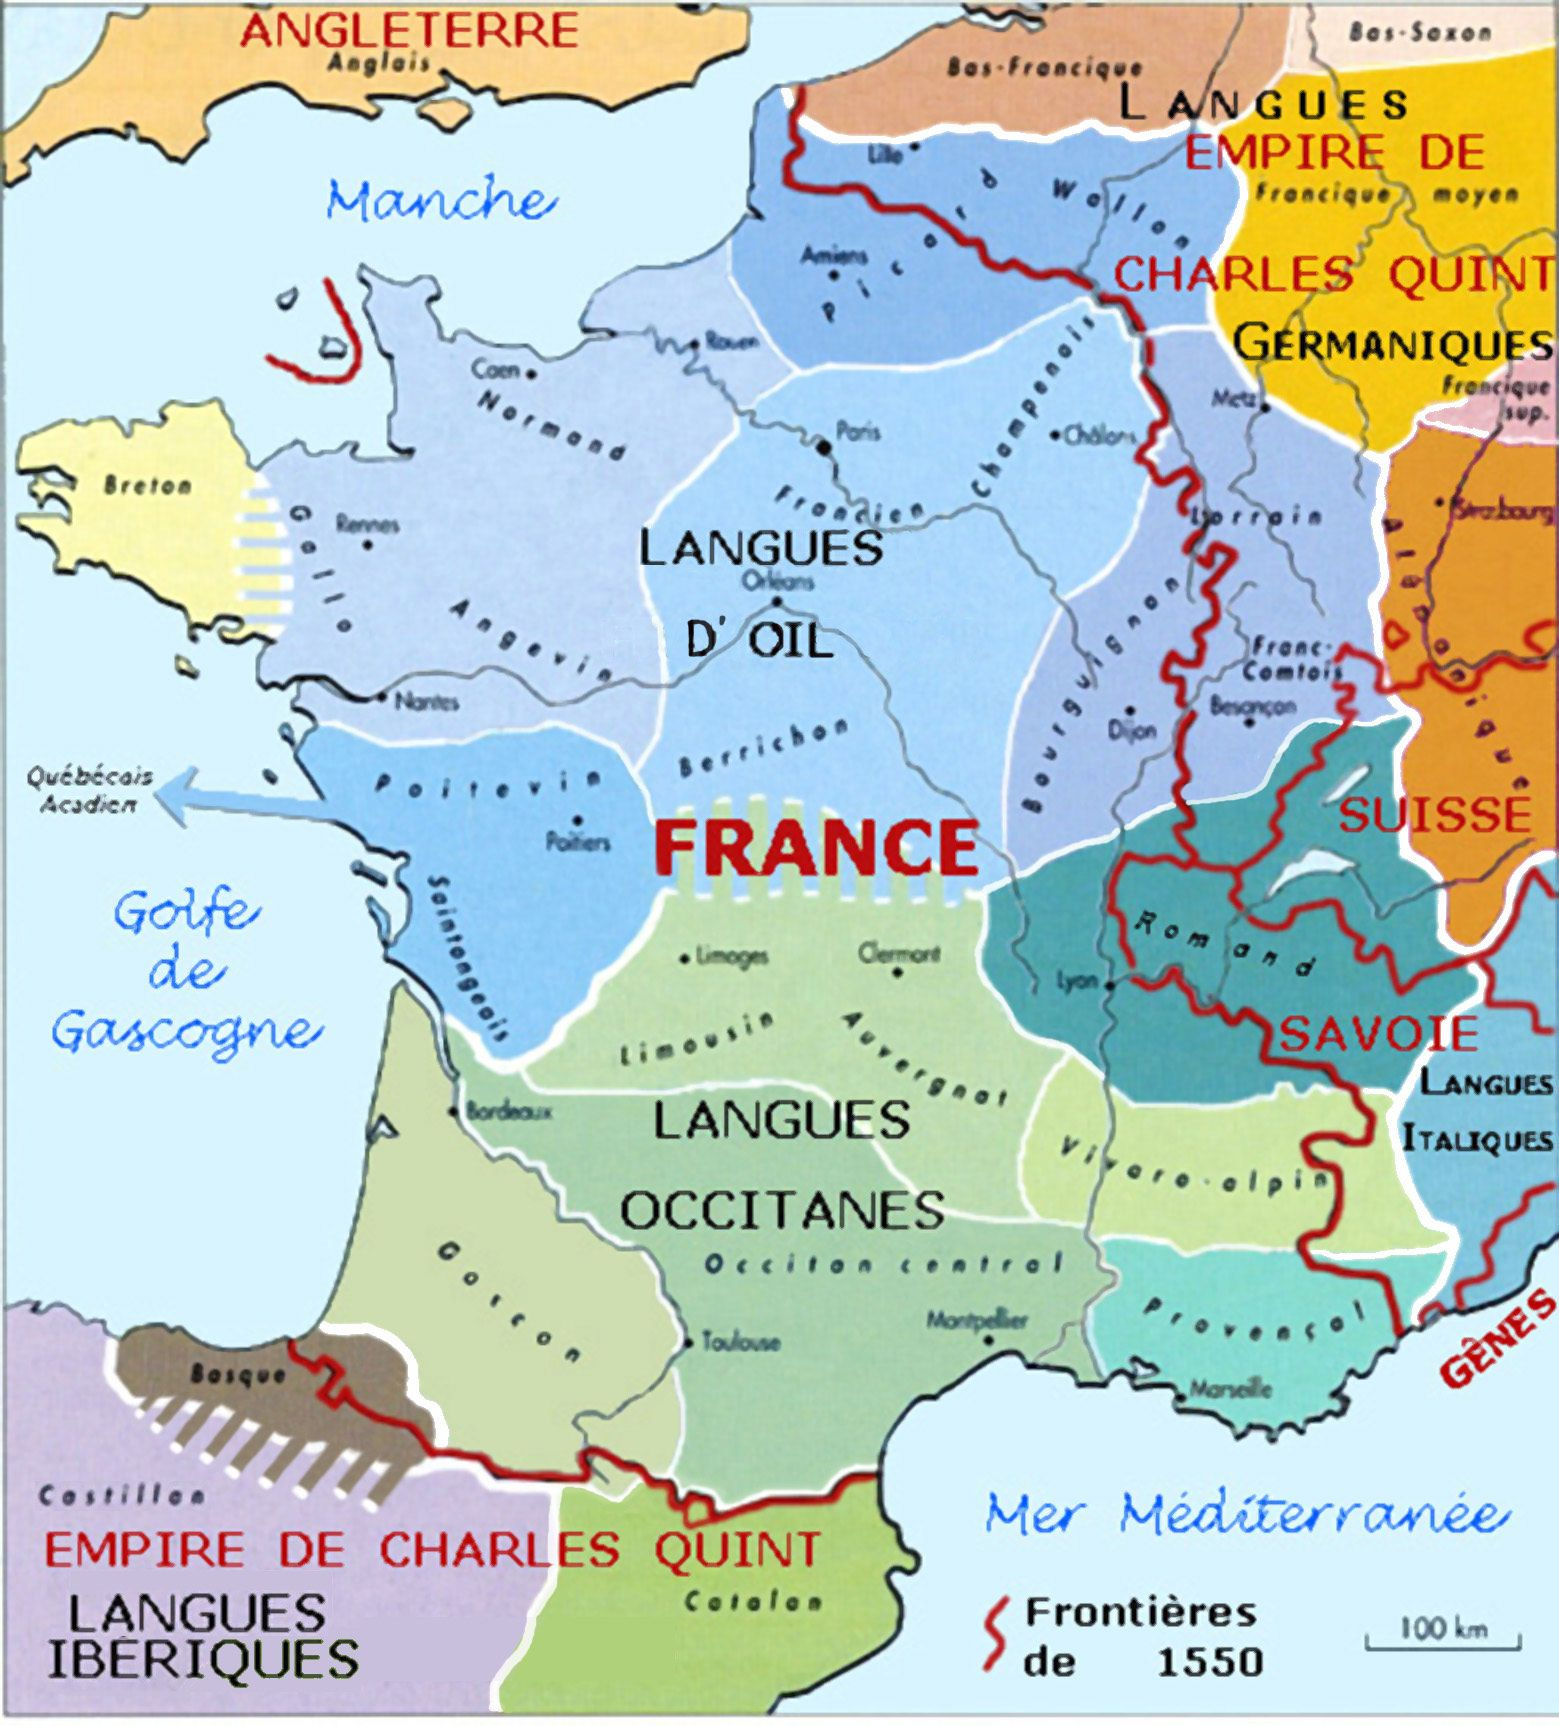 Map Of France And Europe.France Languages Borders 1550 16th Century Europe France